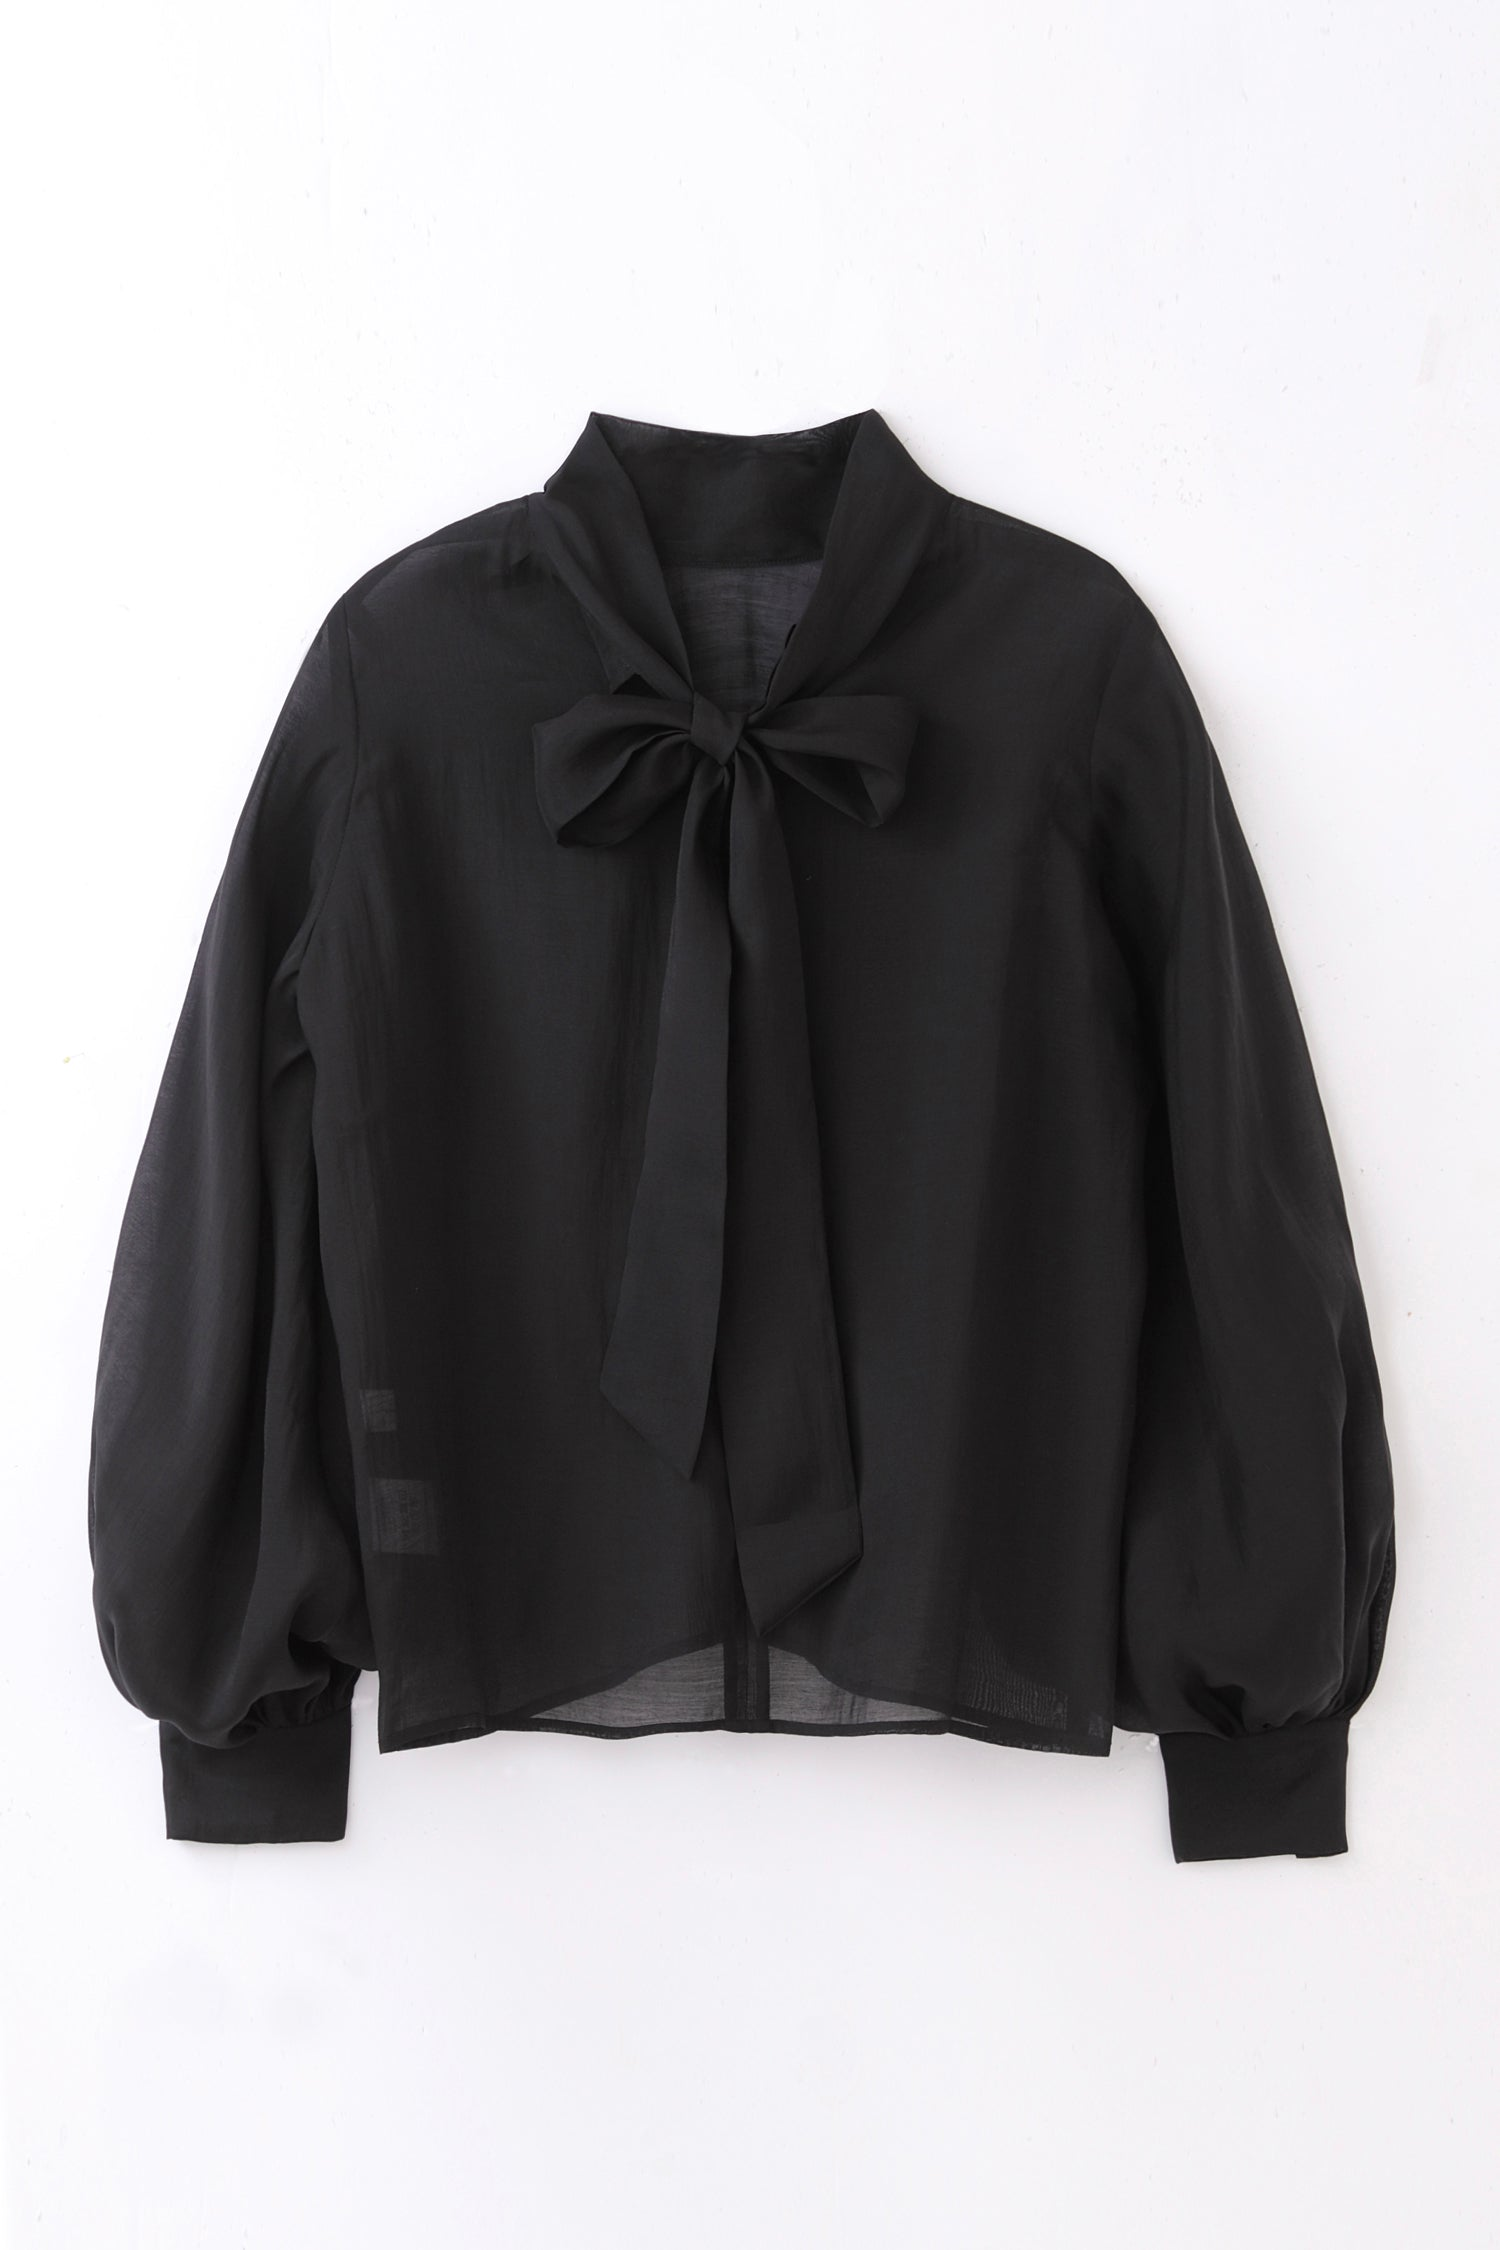 sheer ribbon blouse -black-